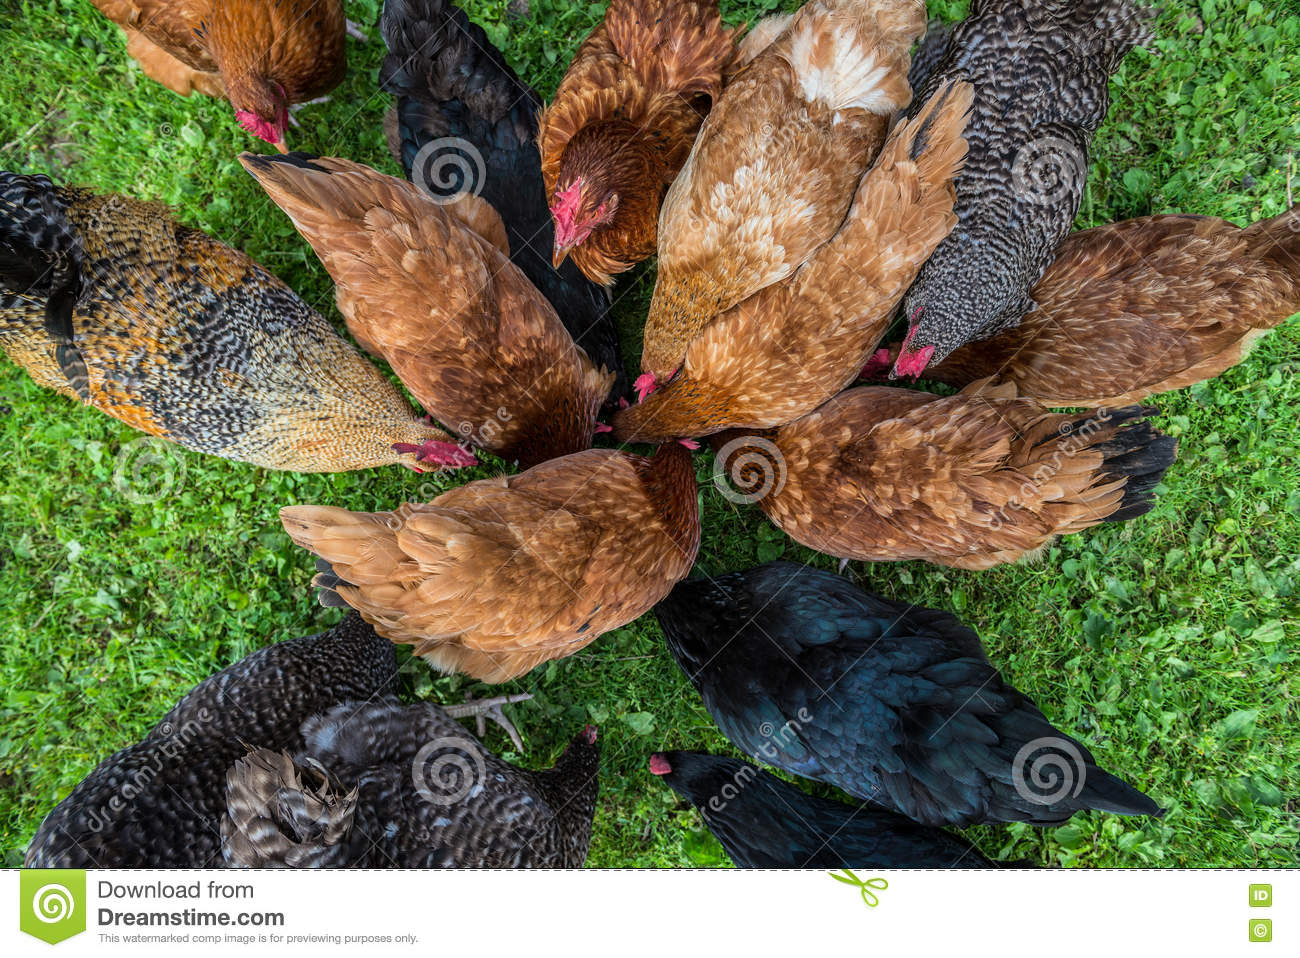 Chickens in Poland